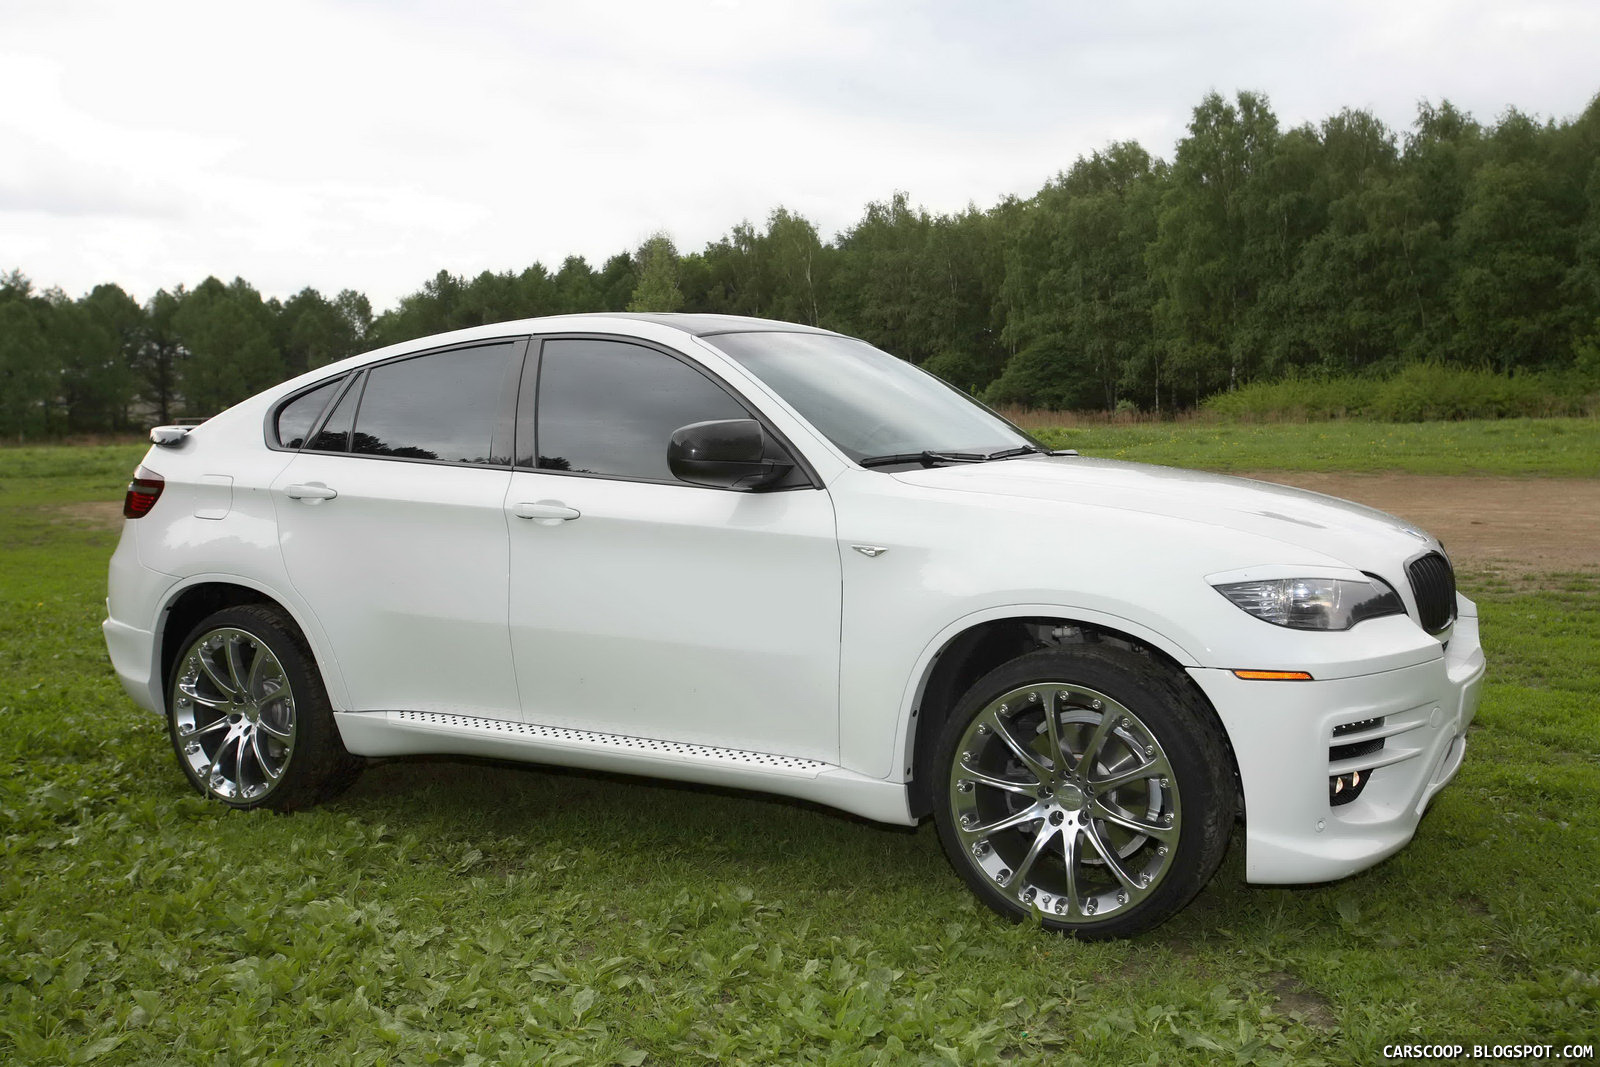 Russian Tuner Status Design Does The Bmw X6 Sav Carscoops